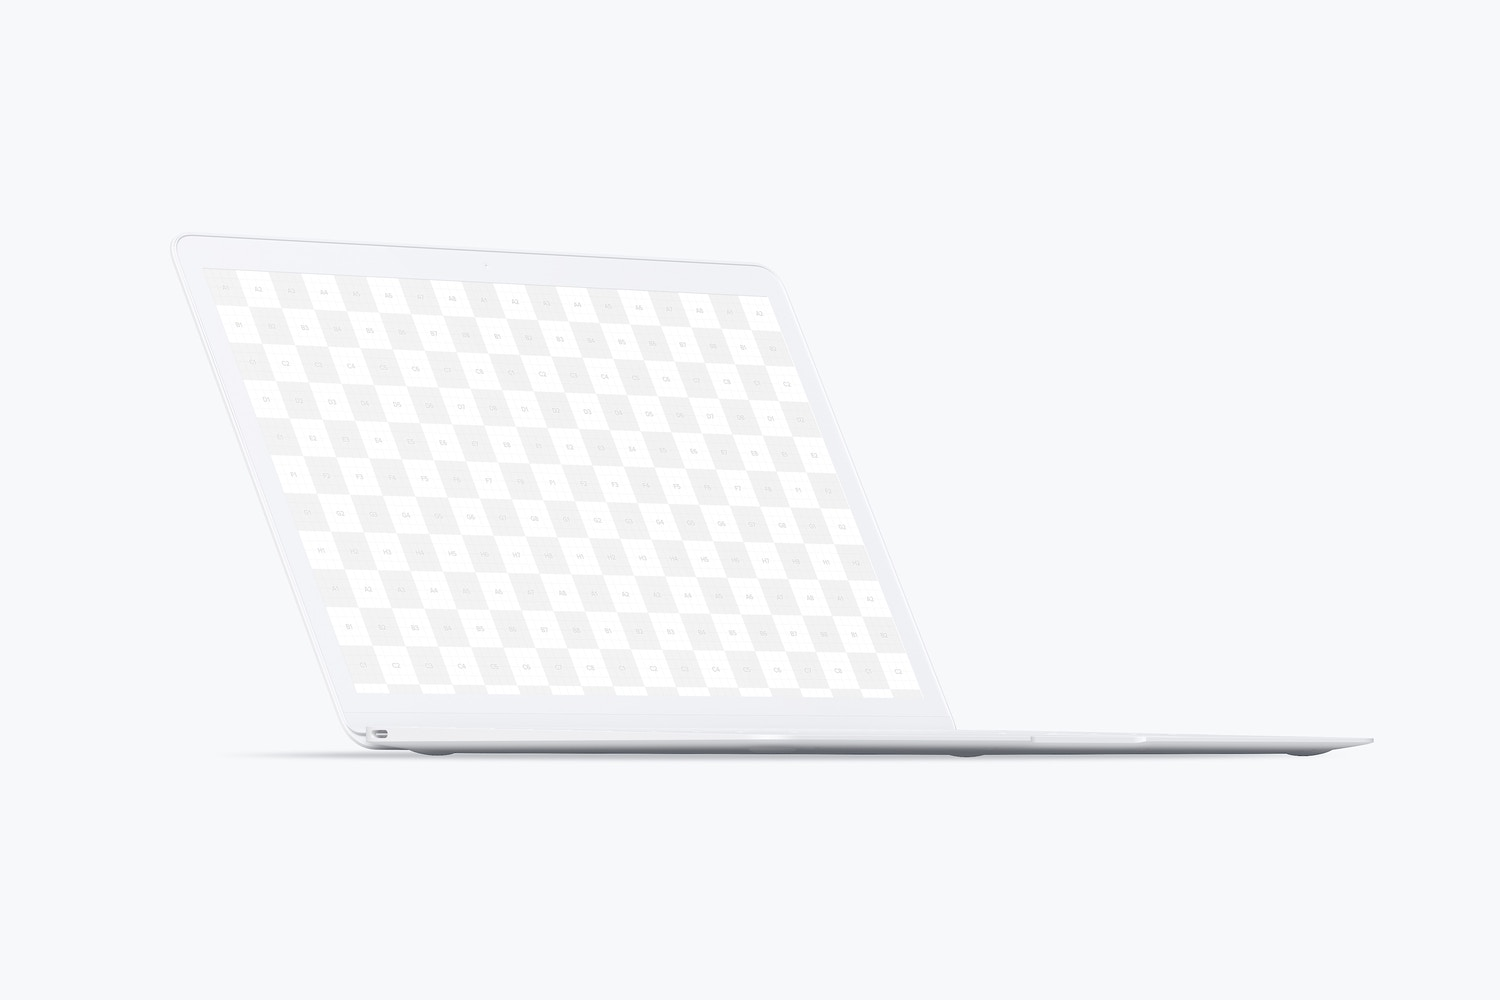 Clay MacBook Mockup, Front Left View (2) by Original Mockups on Original Mockups